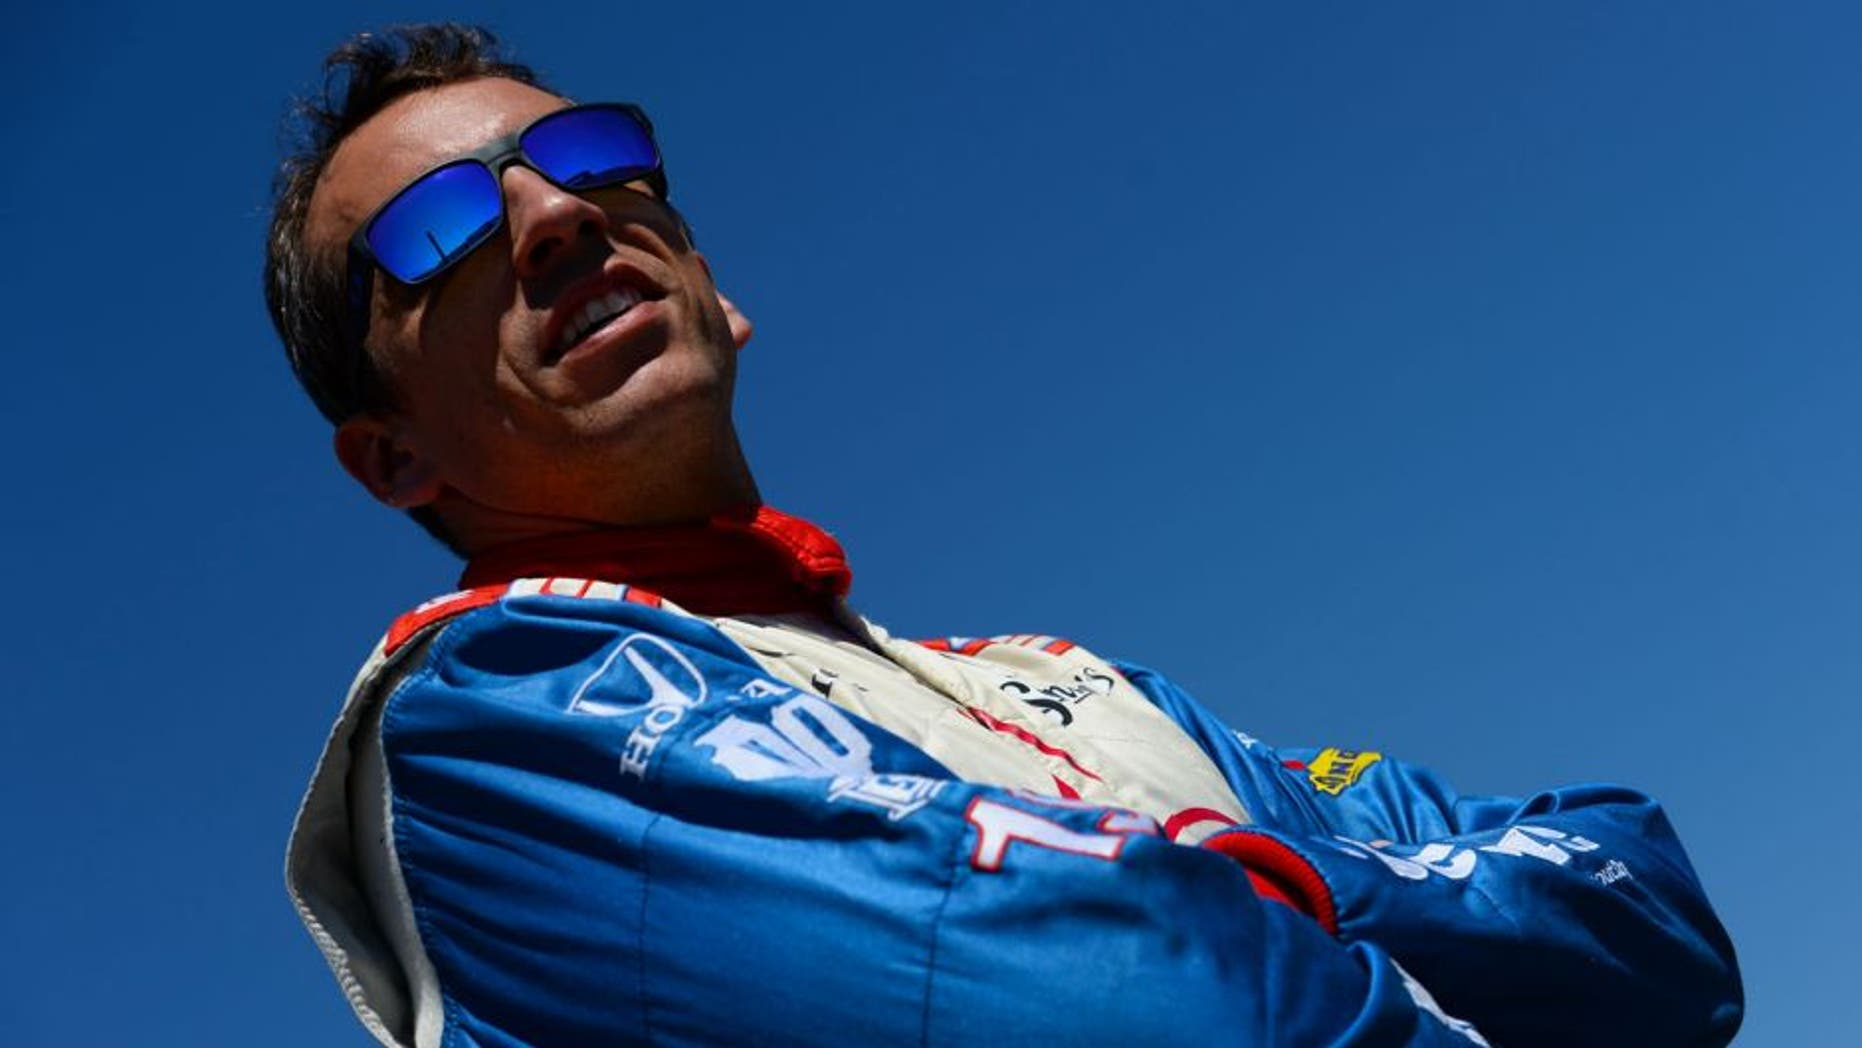 FONTANA, CA - AUGUST 29: Justin Wilson of England driver of the #19 Dale Coyne Racing during qualifying for the Verizon IndyCar Series MAVTV 500 IndyCar World Championship Race at the Auto Club Speedway on August 29, 2014 in Fontana, California. (Photo by Robert Laberge/Getty Images)